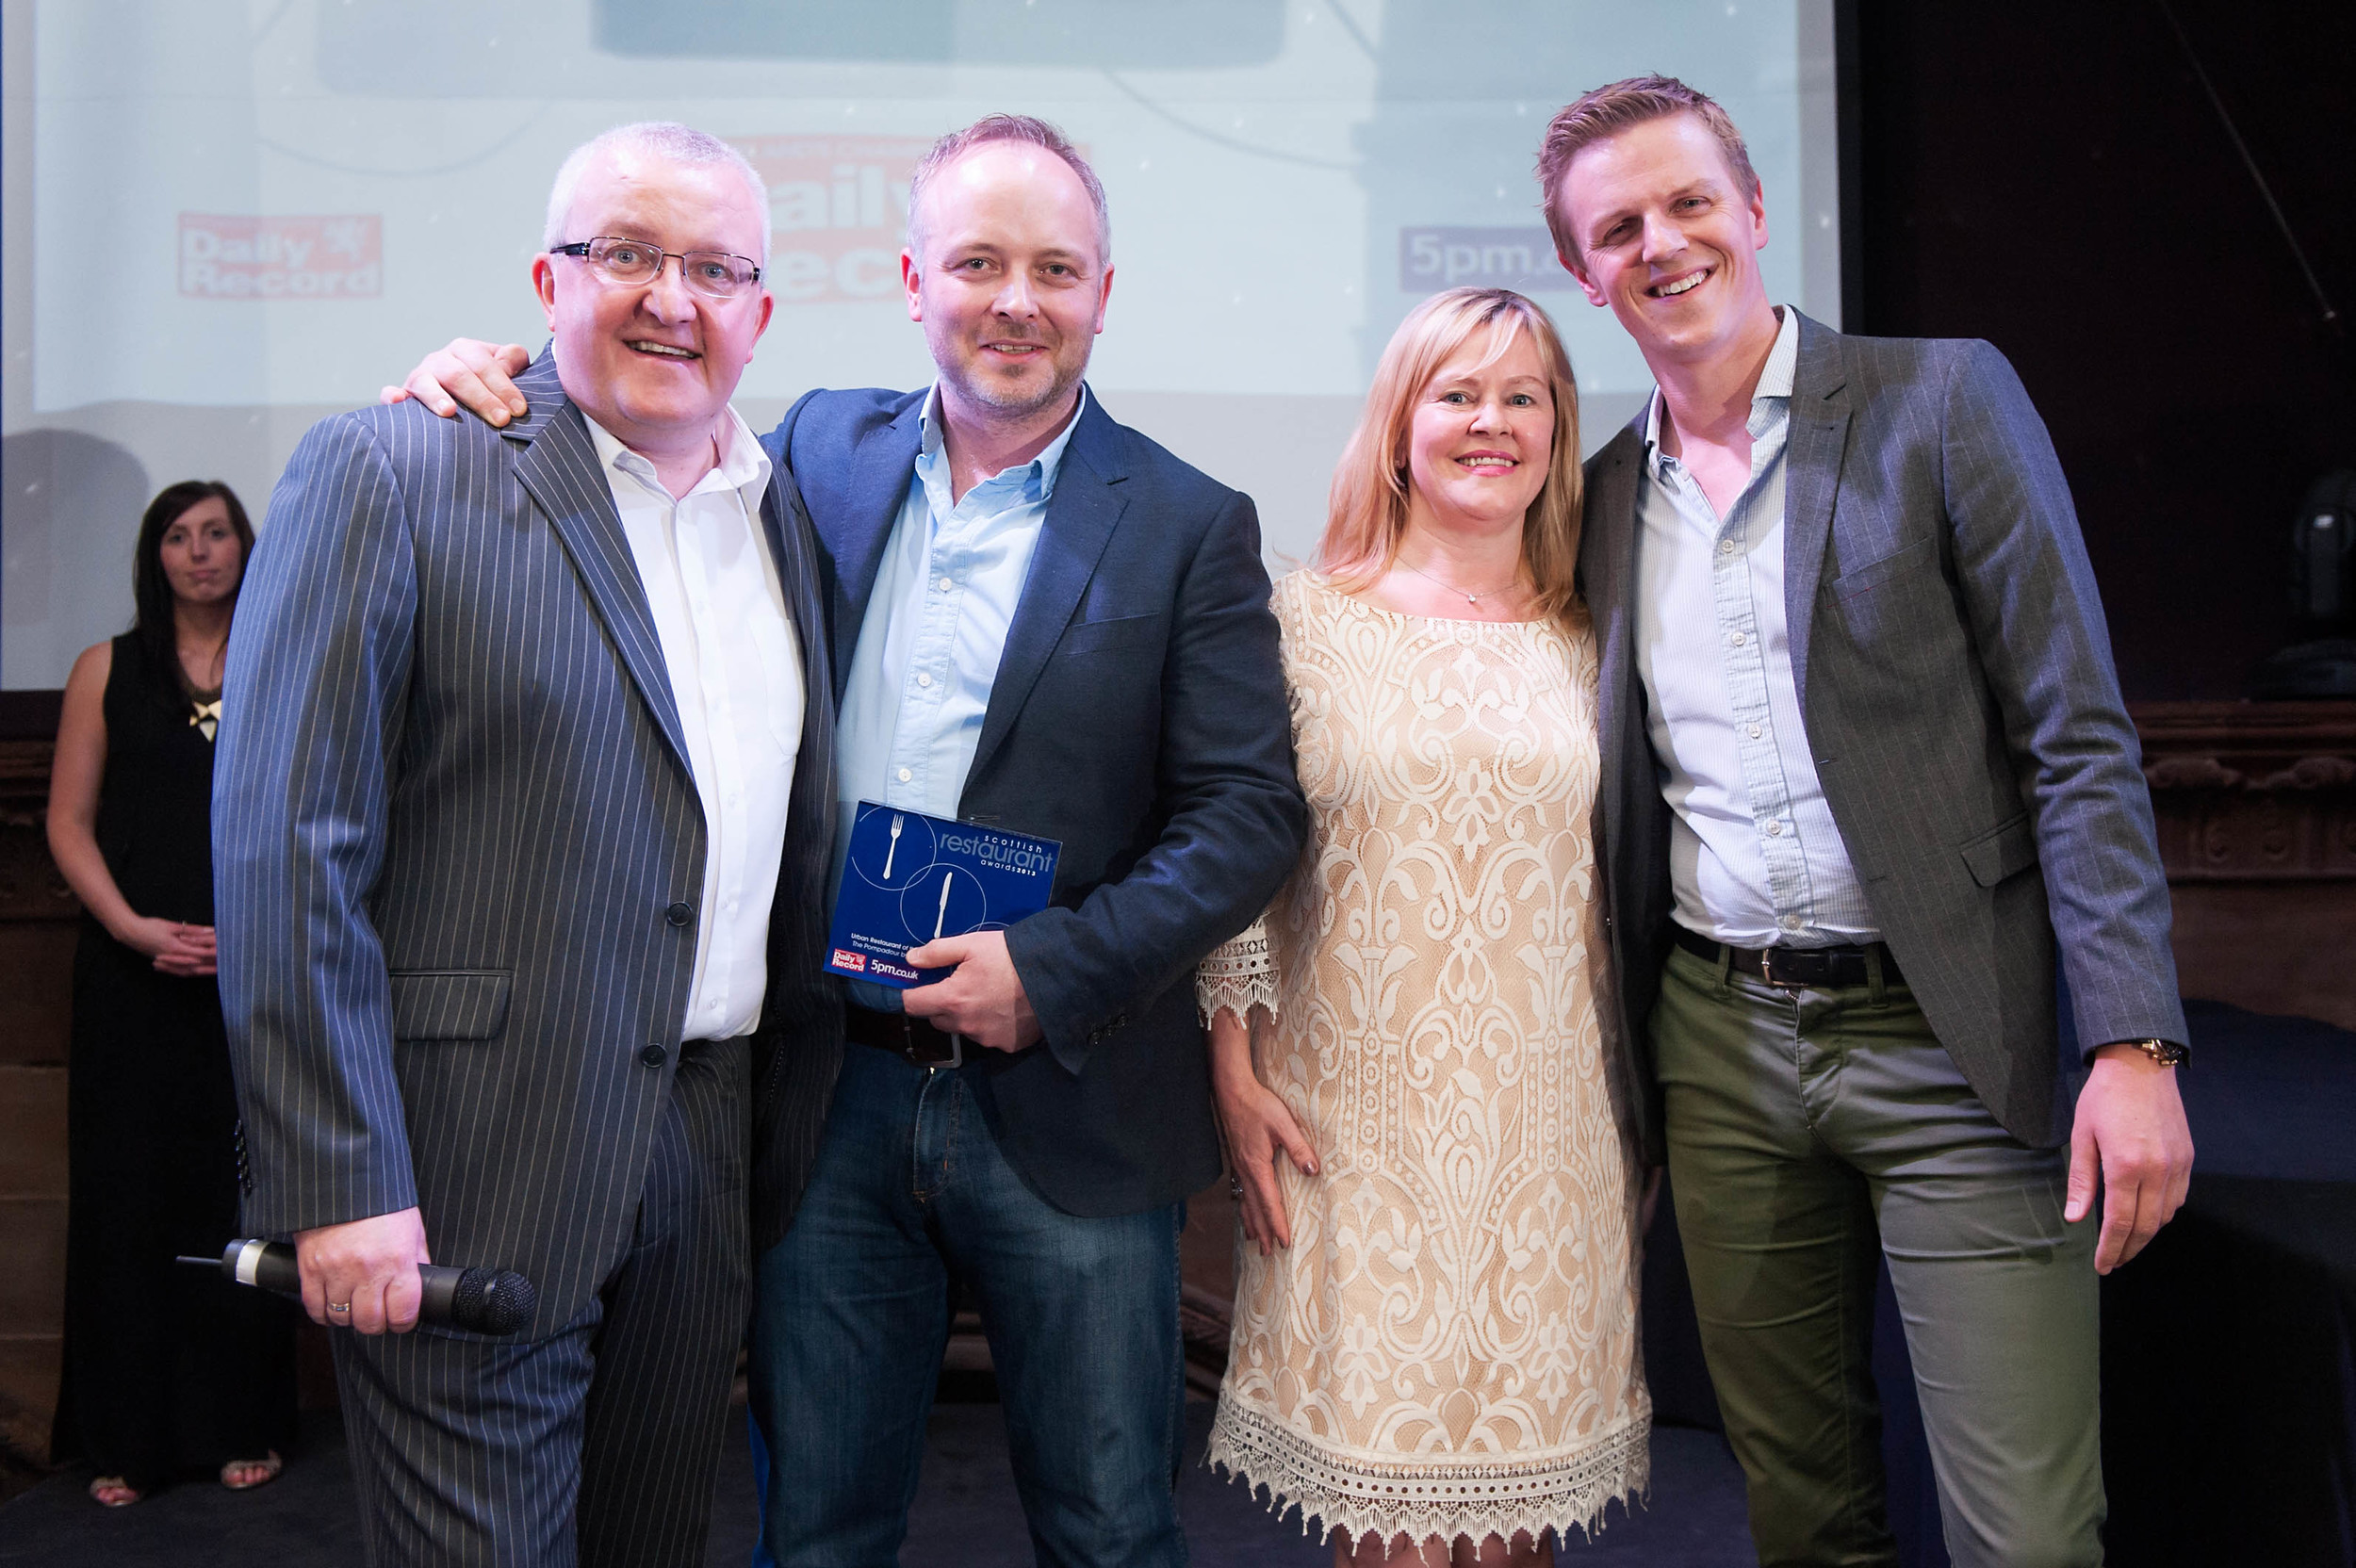 Picture shows Tam Cowan (host), Craig Sandle (executive chef, The Pompadour by Galvin), Denise West (Daily Record, award category sponsor) and Peter Adshead (sommelier, The Pompadour by Galvin). The event was held in Edinburgh atGhillie Dhu onTuesday 4 June 2013.